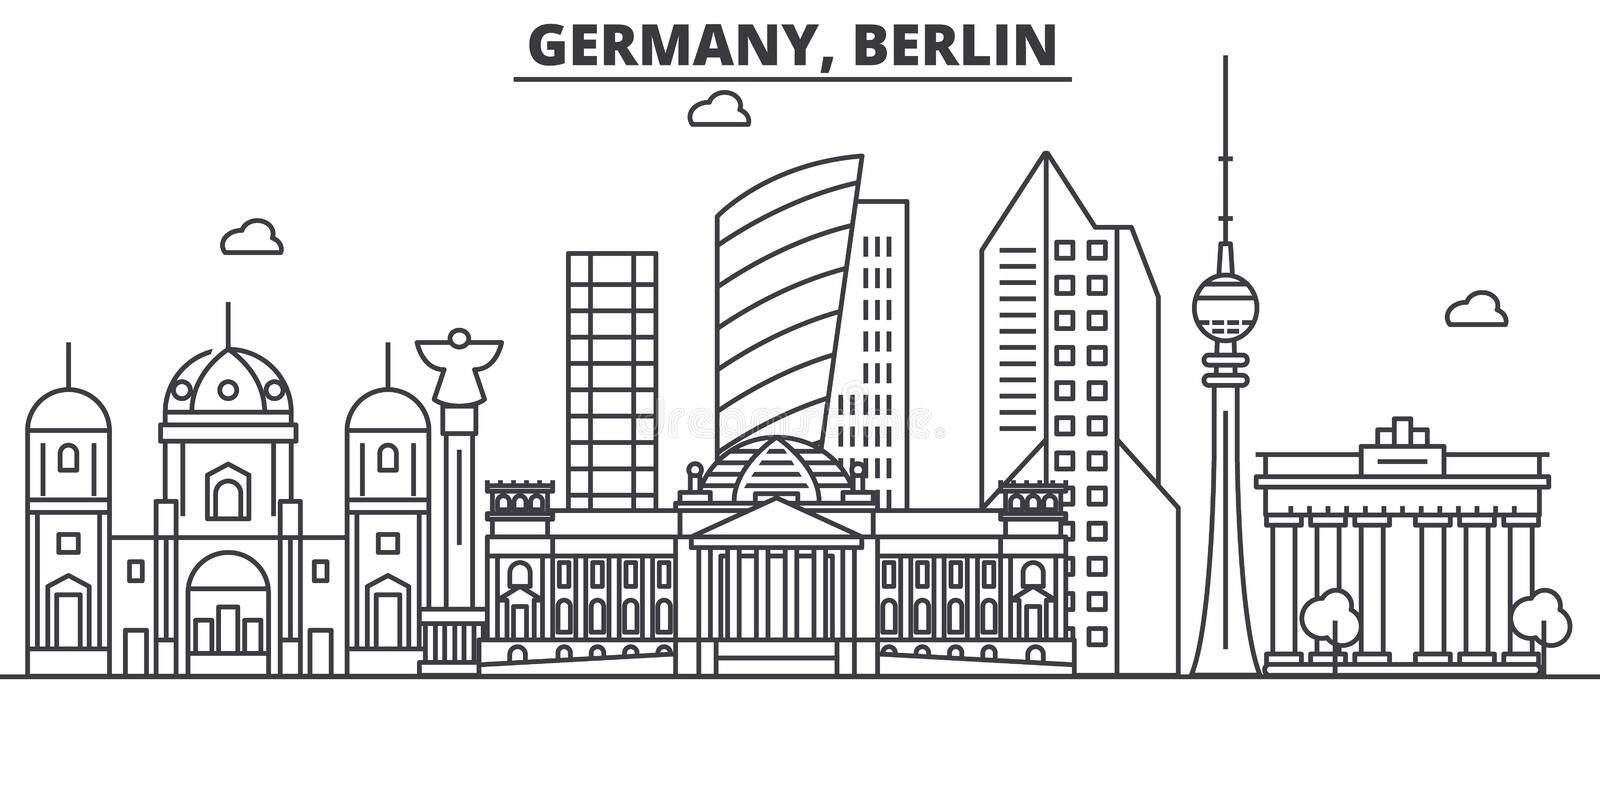 Germany, Berlin architecture line skyline illustration. Linear vector cityscape with famous landmarks, city sights stock illustration